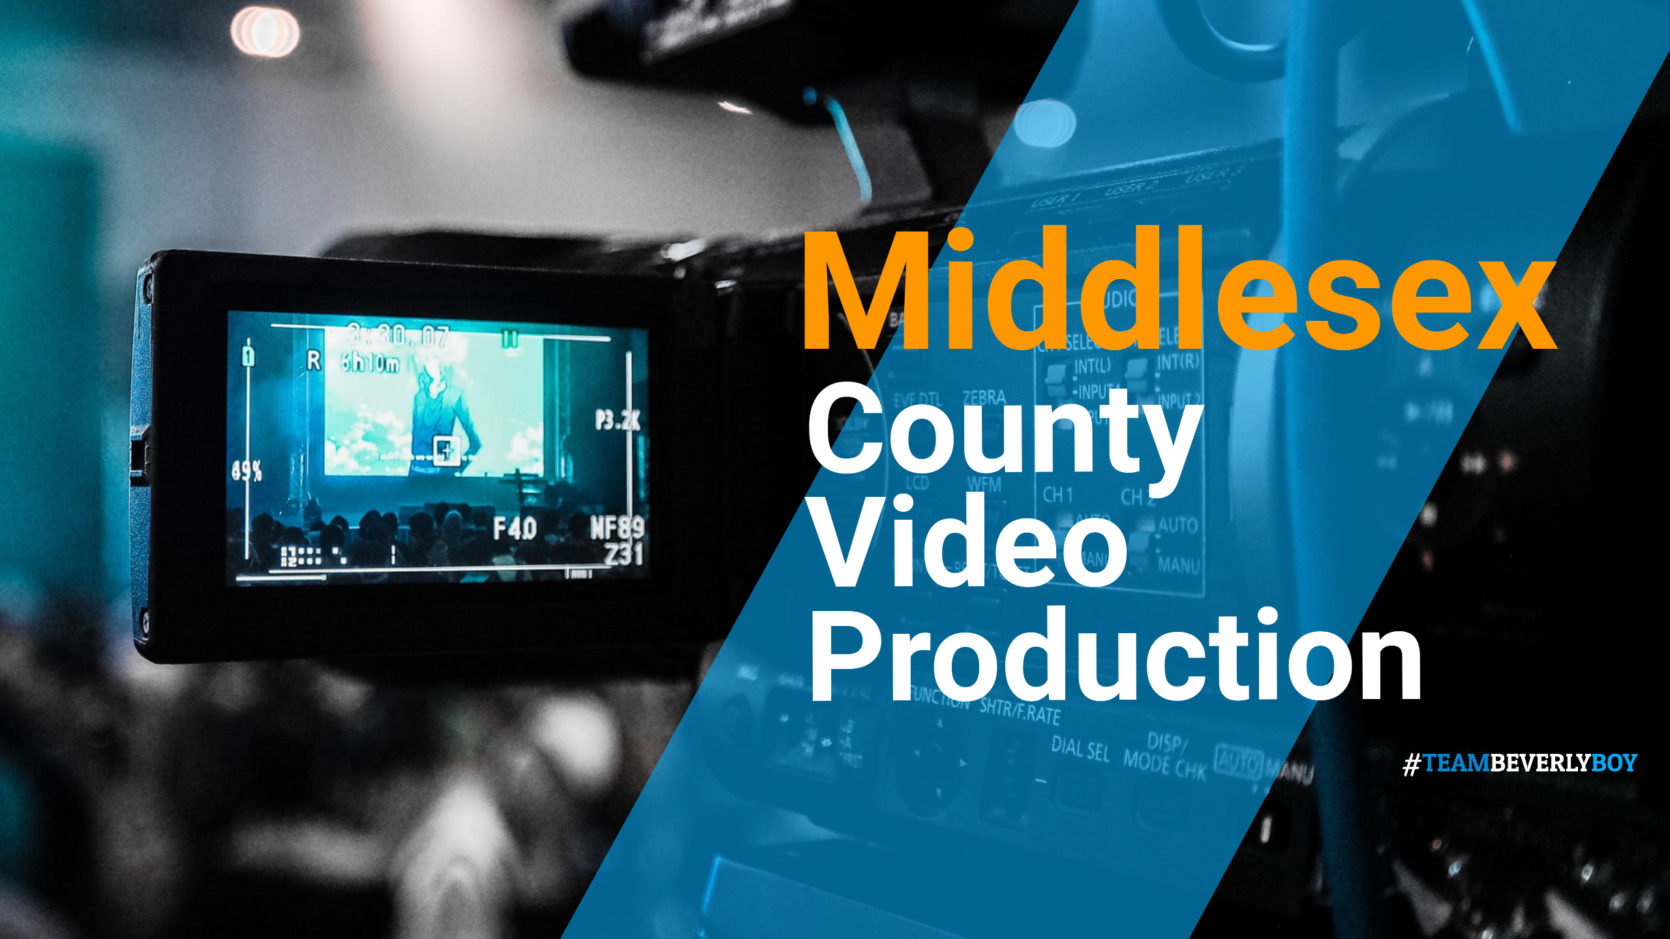 Middlesex County Video Production